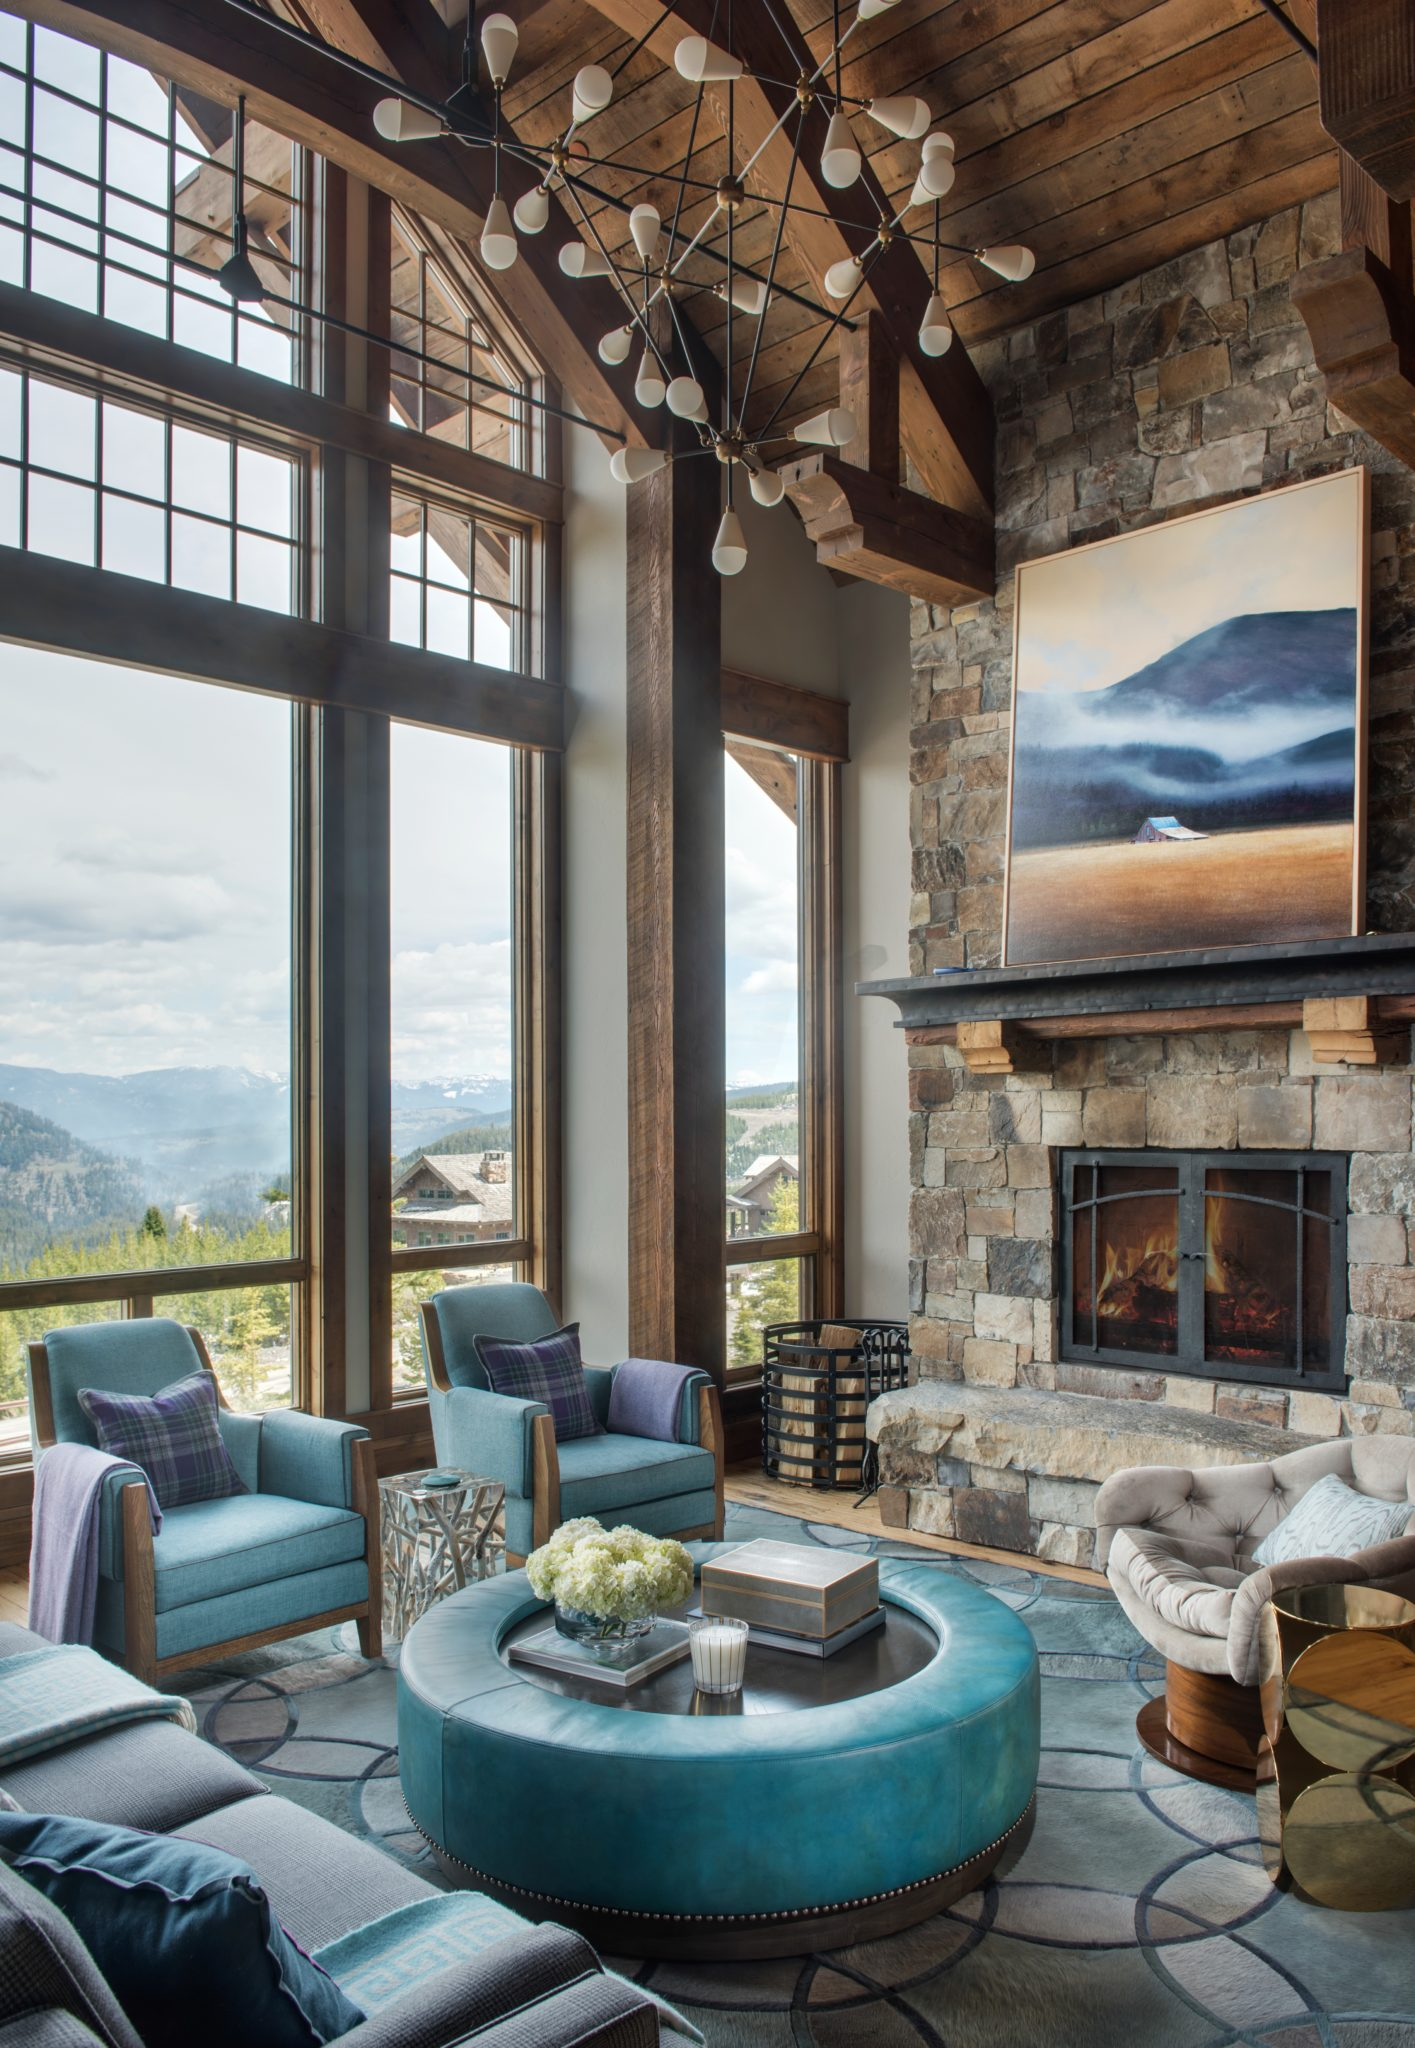 Montana Mountain Retreat Living Room with Large Picture Windows by Kelly Hohla Interiors